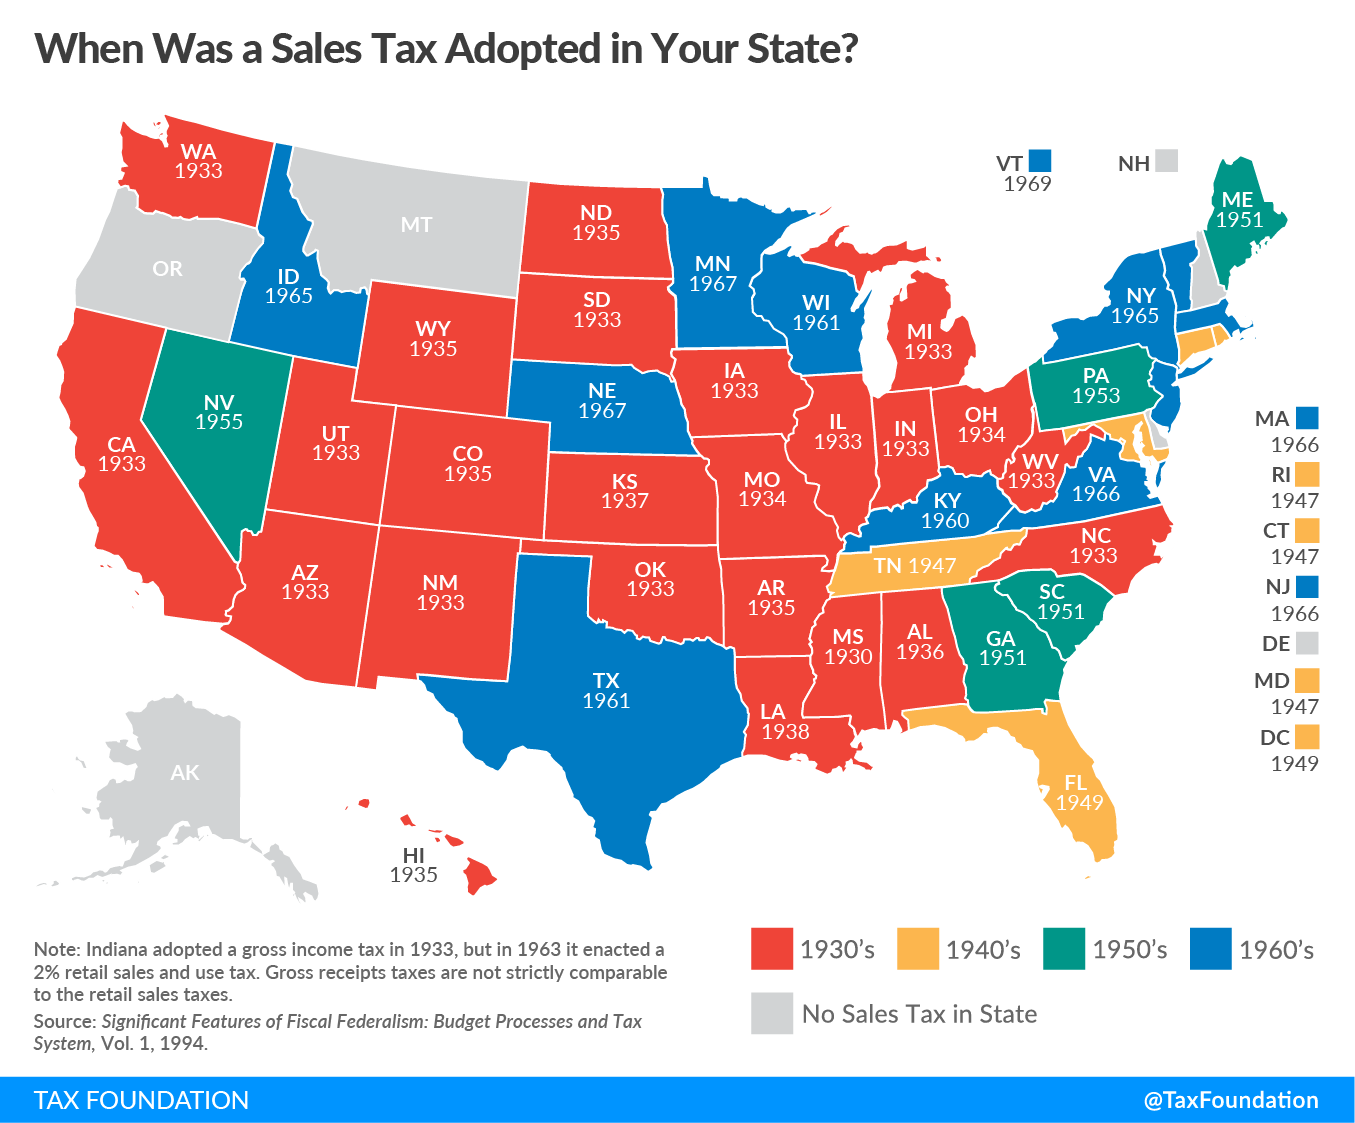 Sales Tax Adoption by State